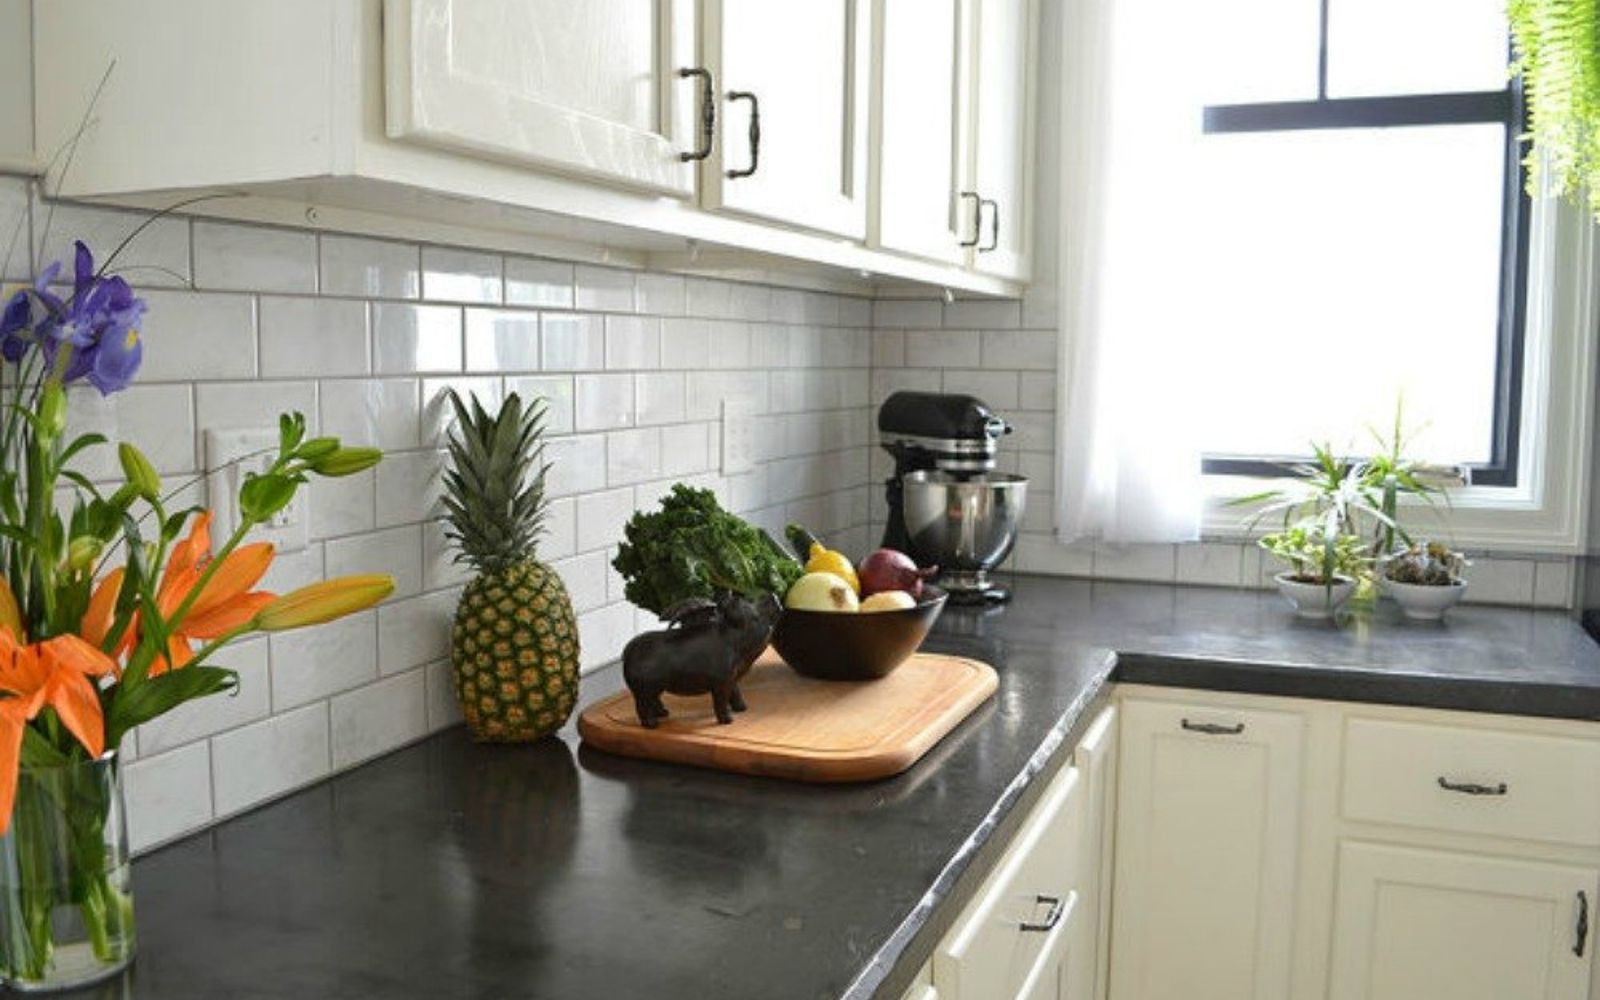 How To Decorate Kitchen Counters: 13 Different Ways To Make Your Own Concrete Kitchen